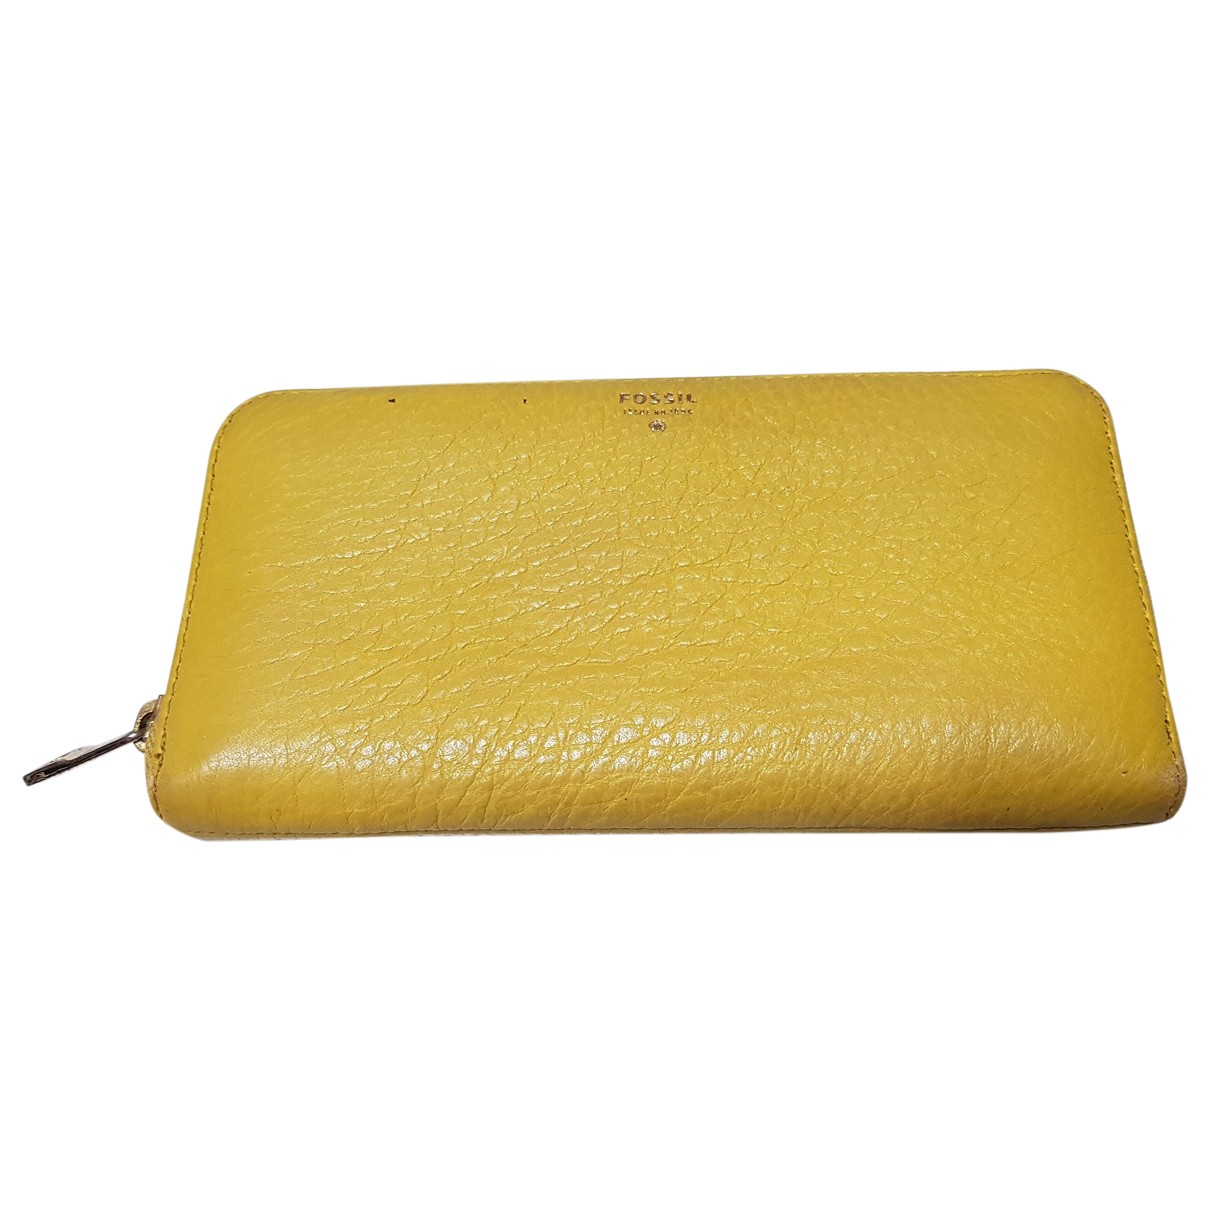 Fossil N Yellow Leather wallet for Women N